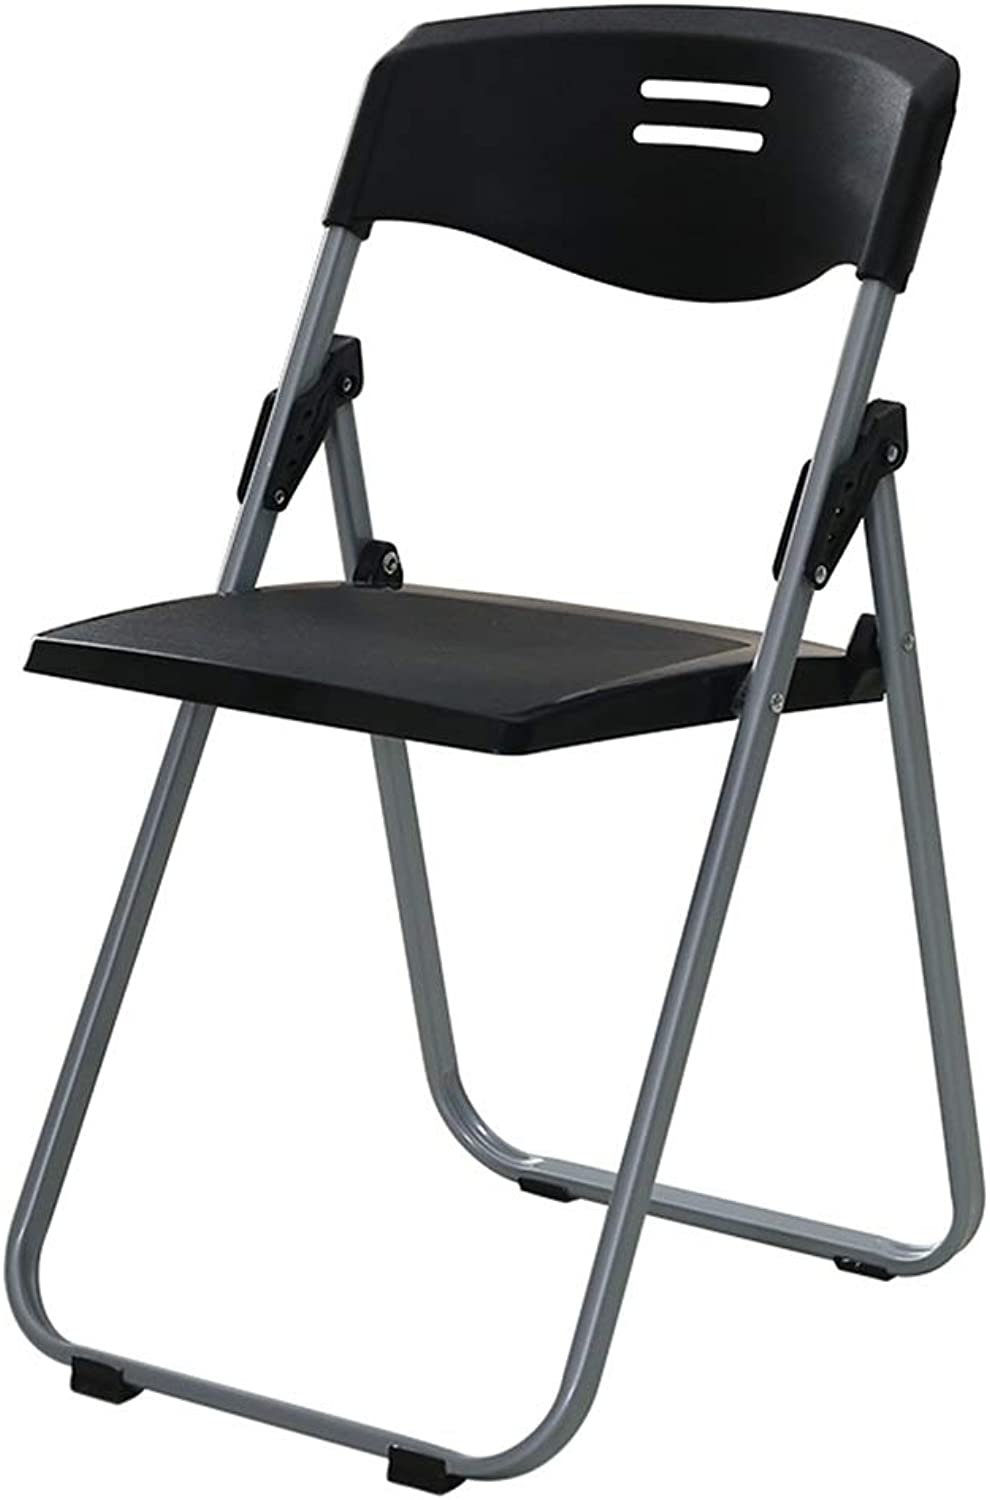 ZAHOYONGLI Chairs,Folding Chairs Folding Breakfast Padded Bar Chair Stool Kitchen Party Office Stool Seat (color   Black, Size   37  41  79-104cm)